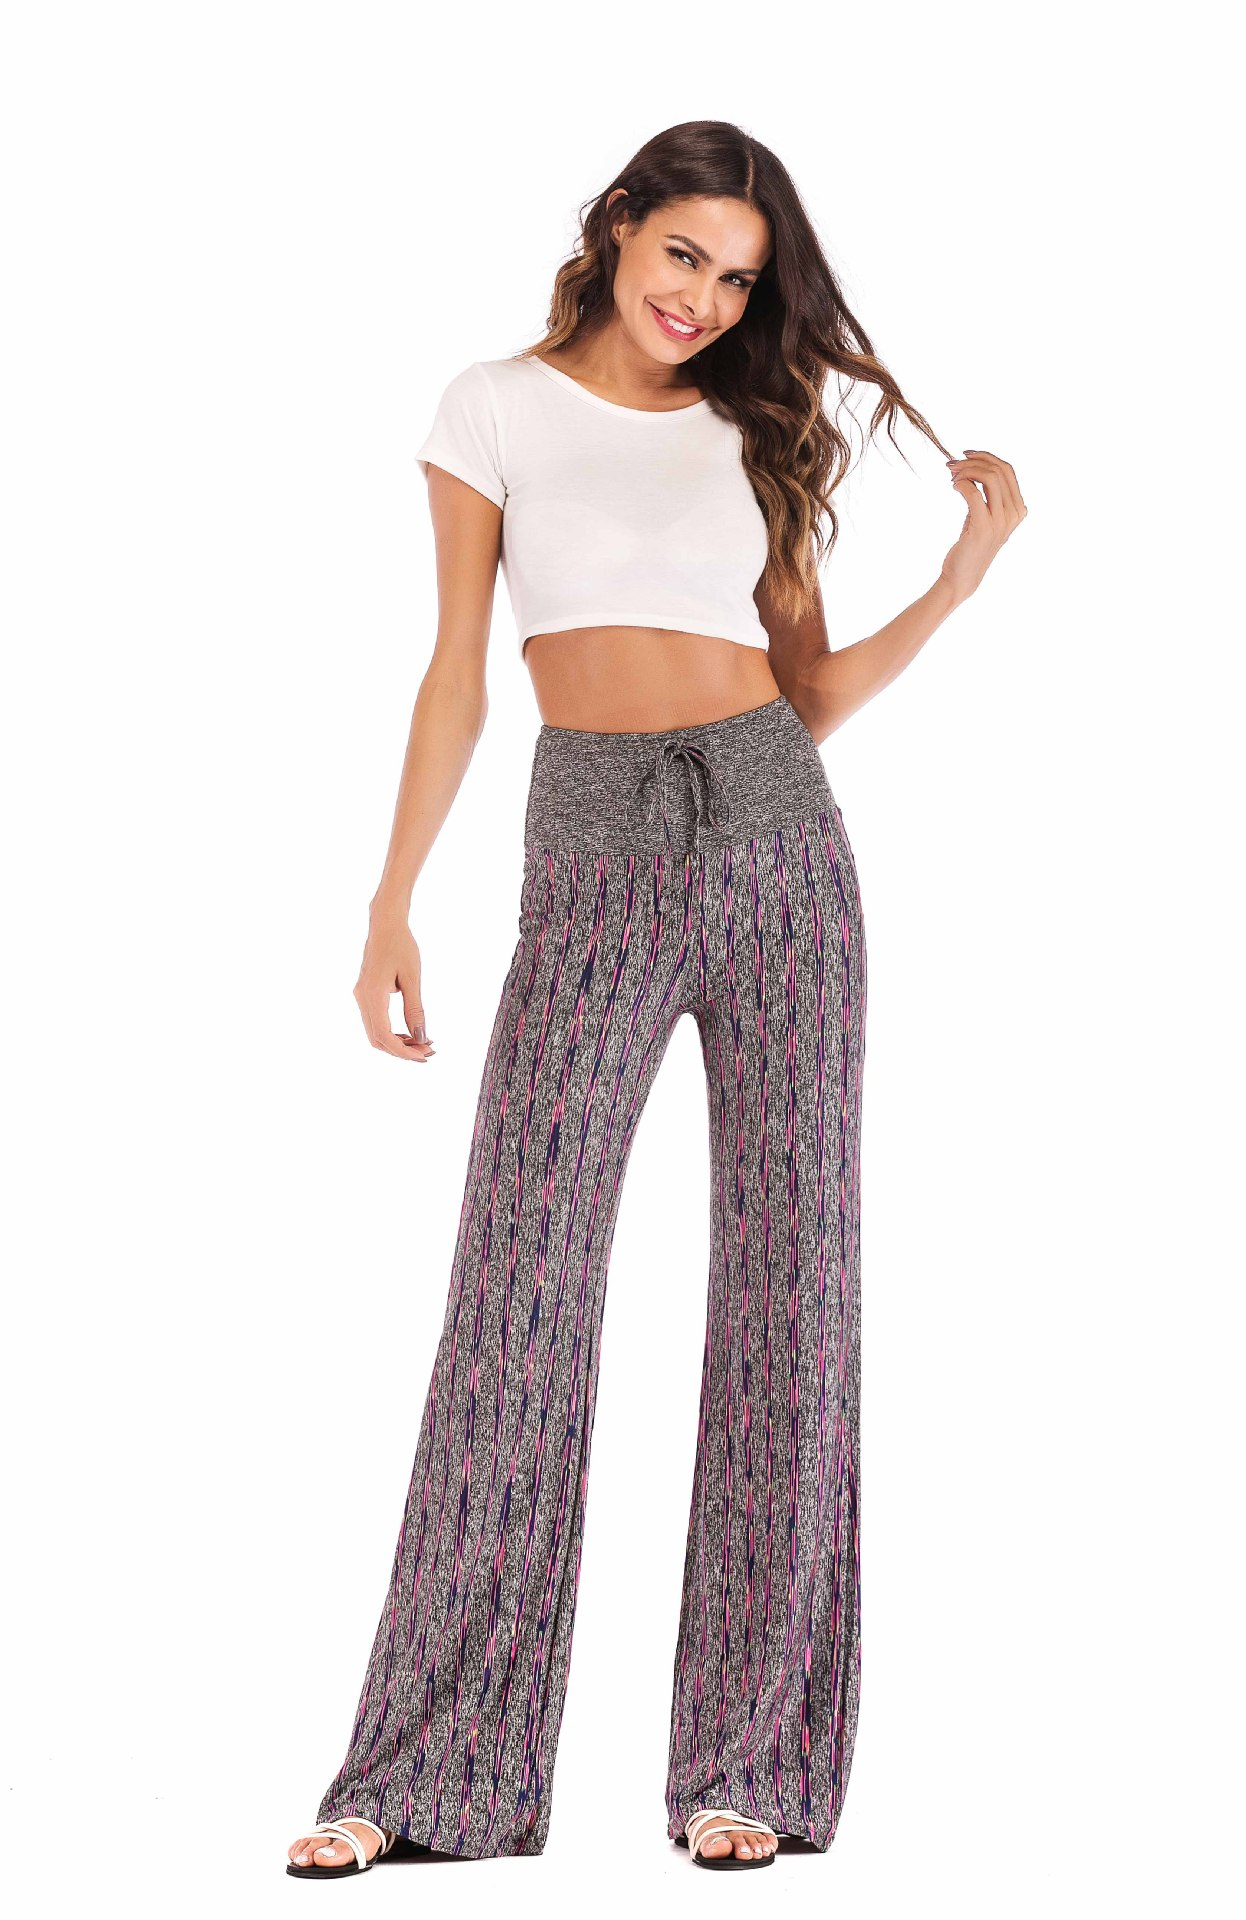 Women Striped Pants Drawstring High Waist Yoga Sports Casual Loose Long Trousers purple